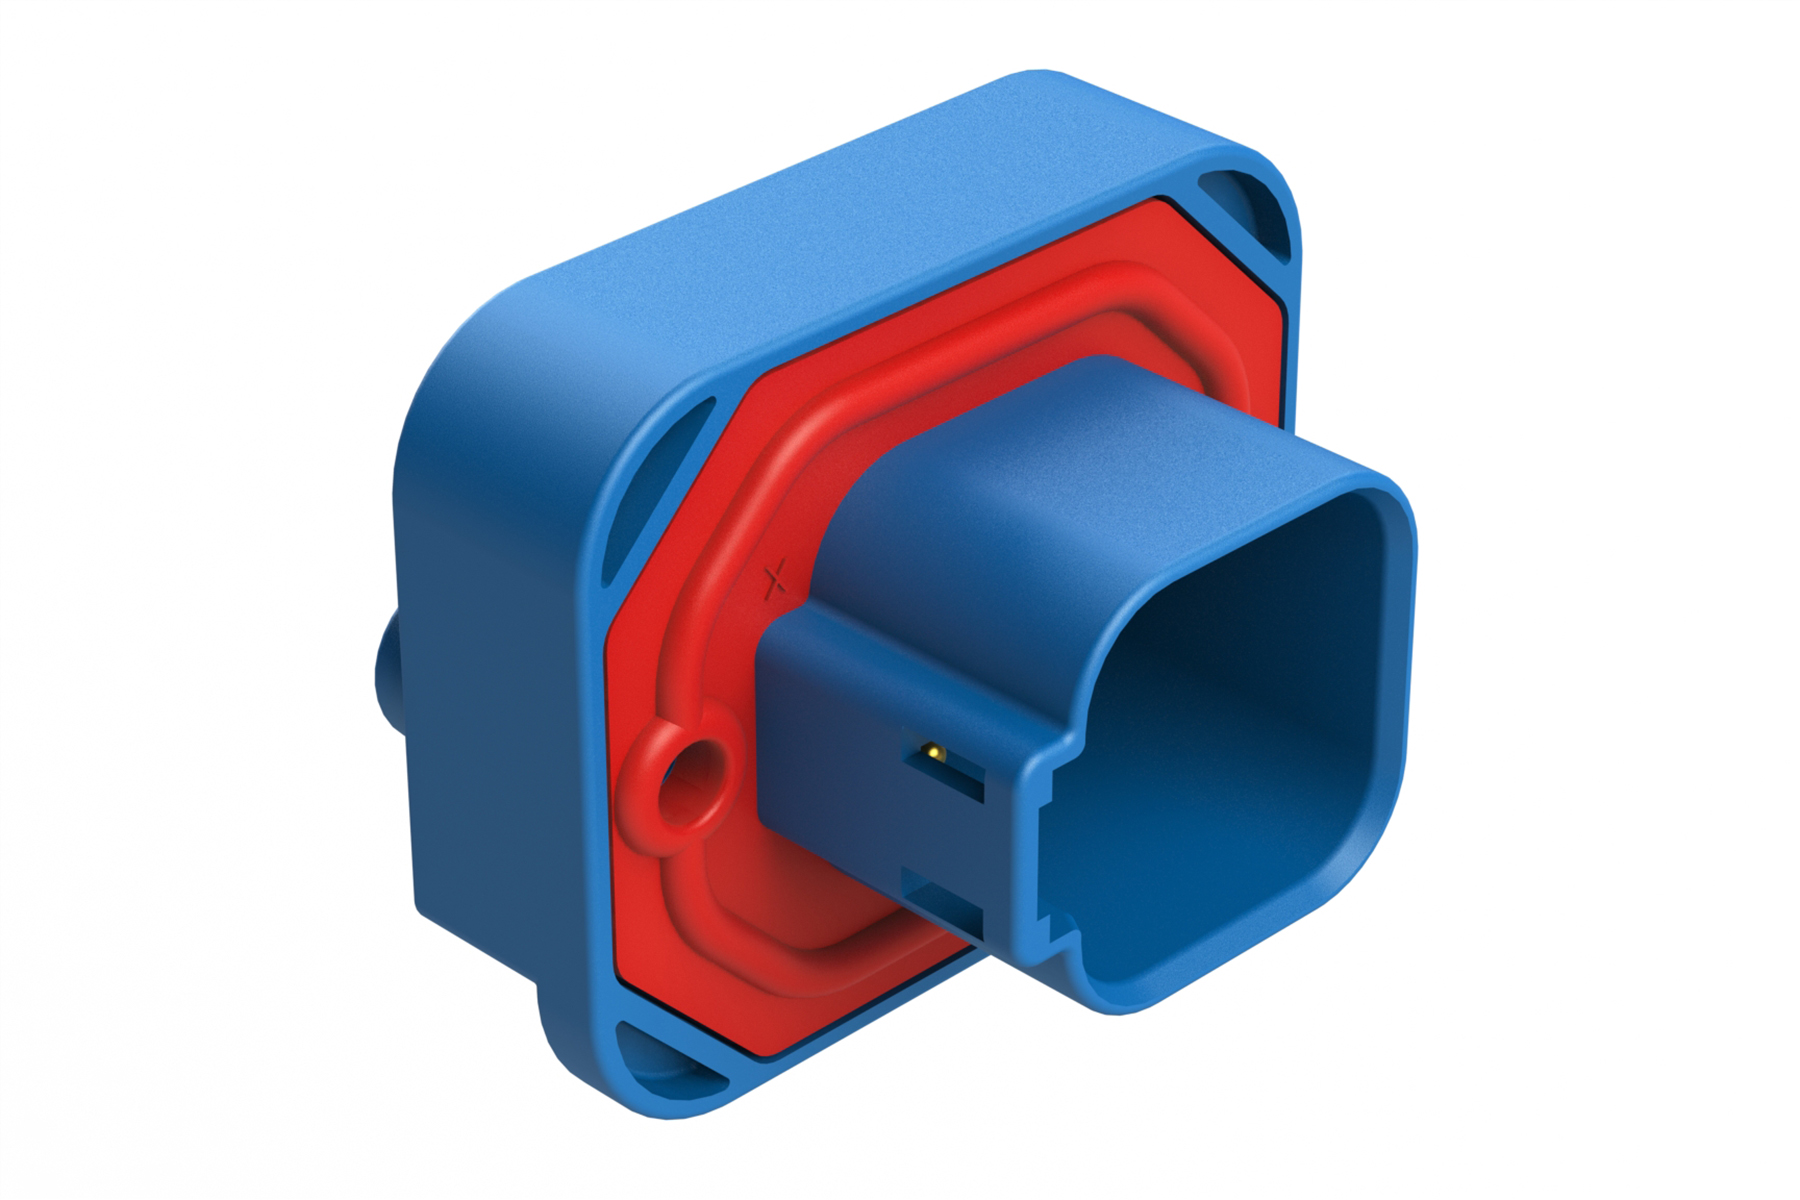 AT15-6P2-BM02BLU  6 Position Straight Flange Mount PCB Receptacle, Potted, Blue, Gold Plated Contacts Included